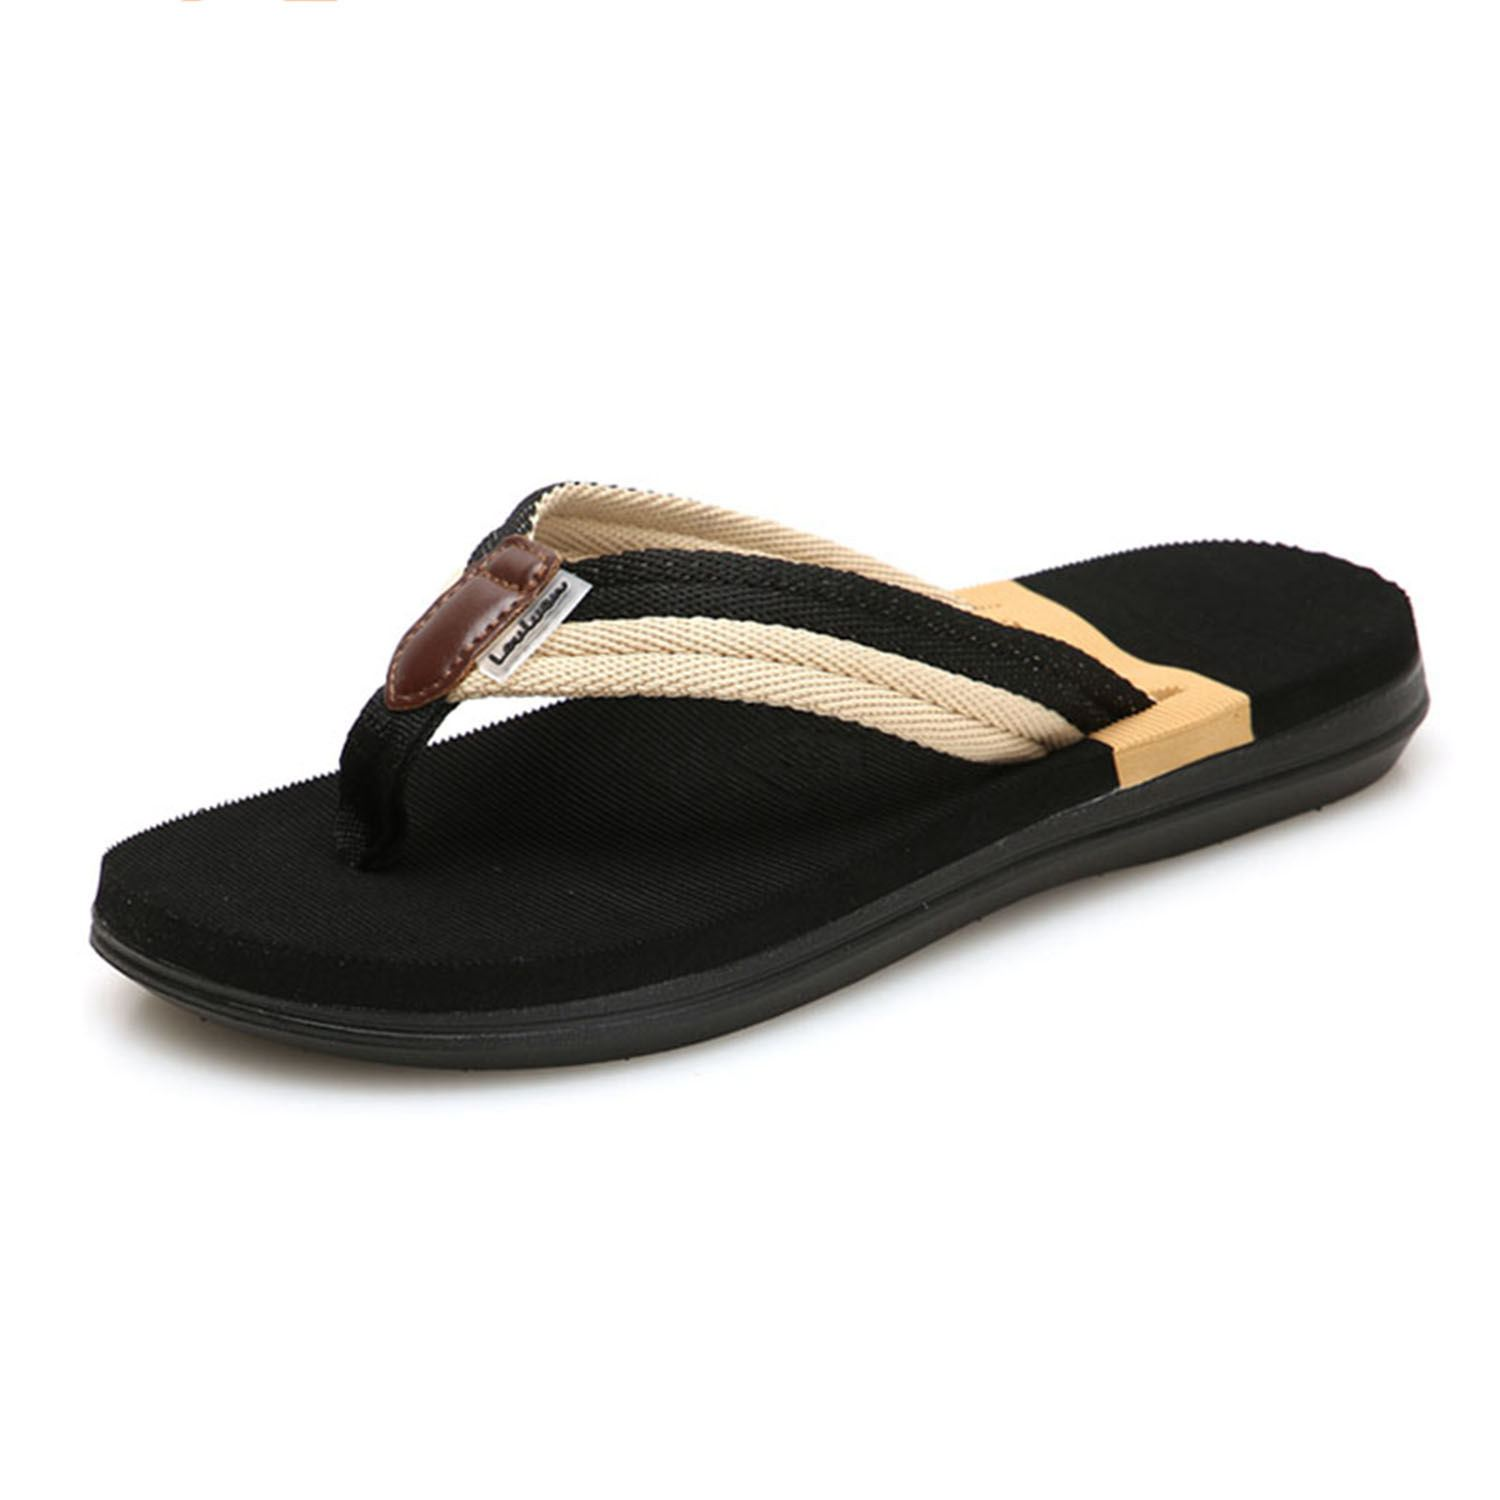 Beach Sandals Sandalias Men Shoes Summer Slippers Flip Flops Men Sandals Hombre Chausson Homme Casual Walking Shoes 6 colors flip flops men sandals summer shoes men slippers beach sandals men flip flops sandalias hombre slides size 39 45 page 1